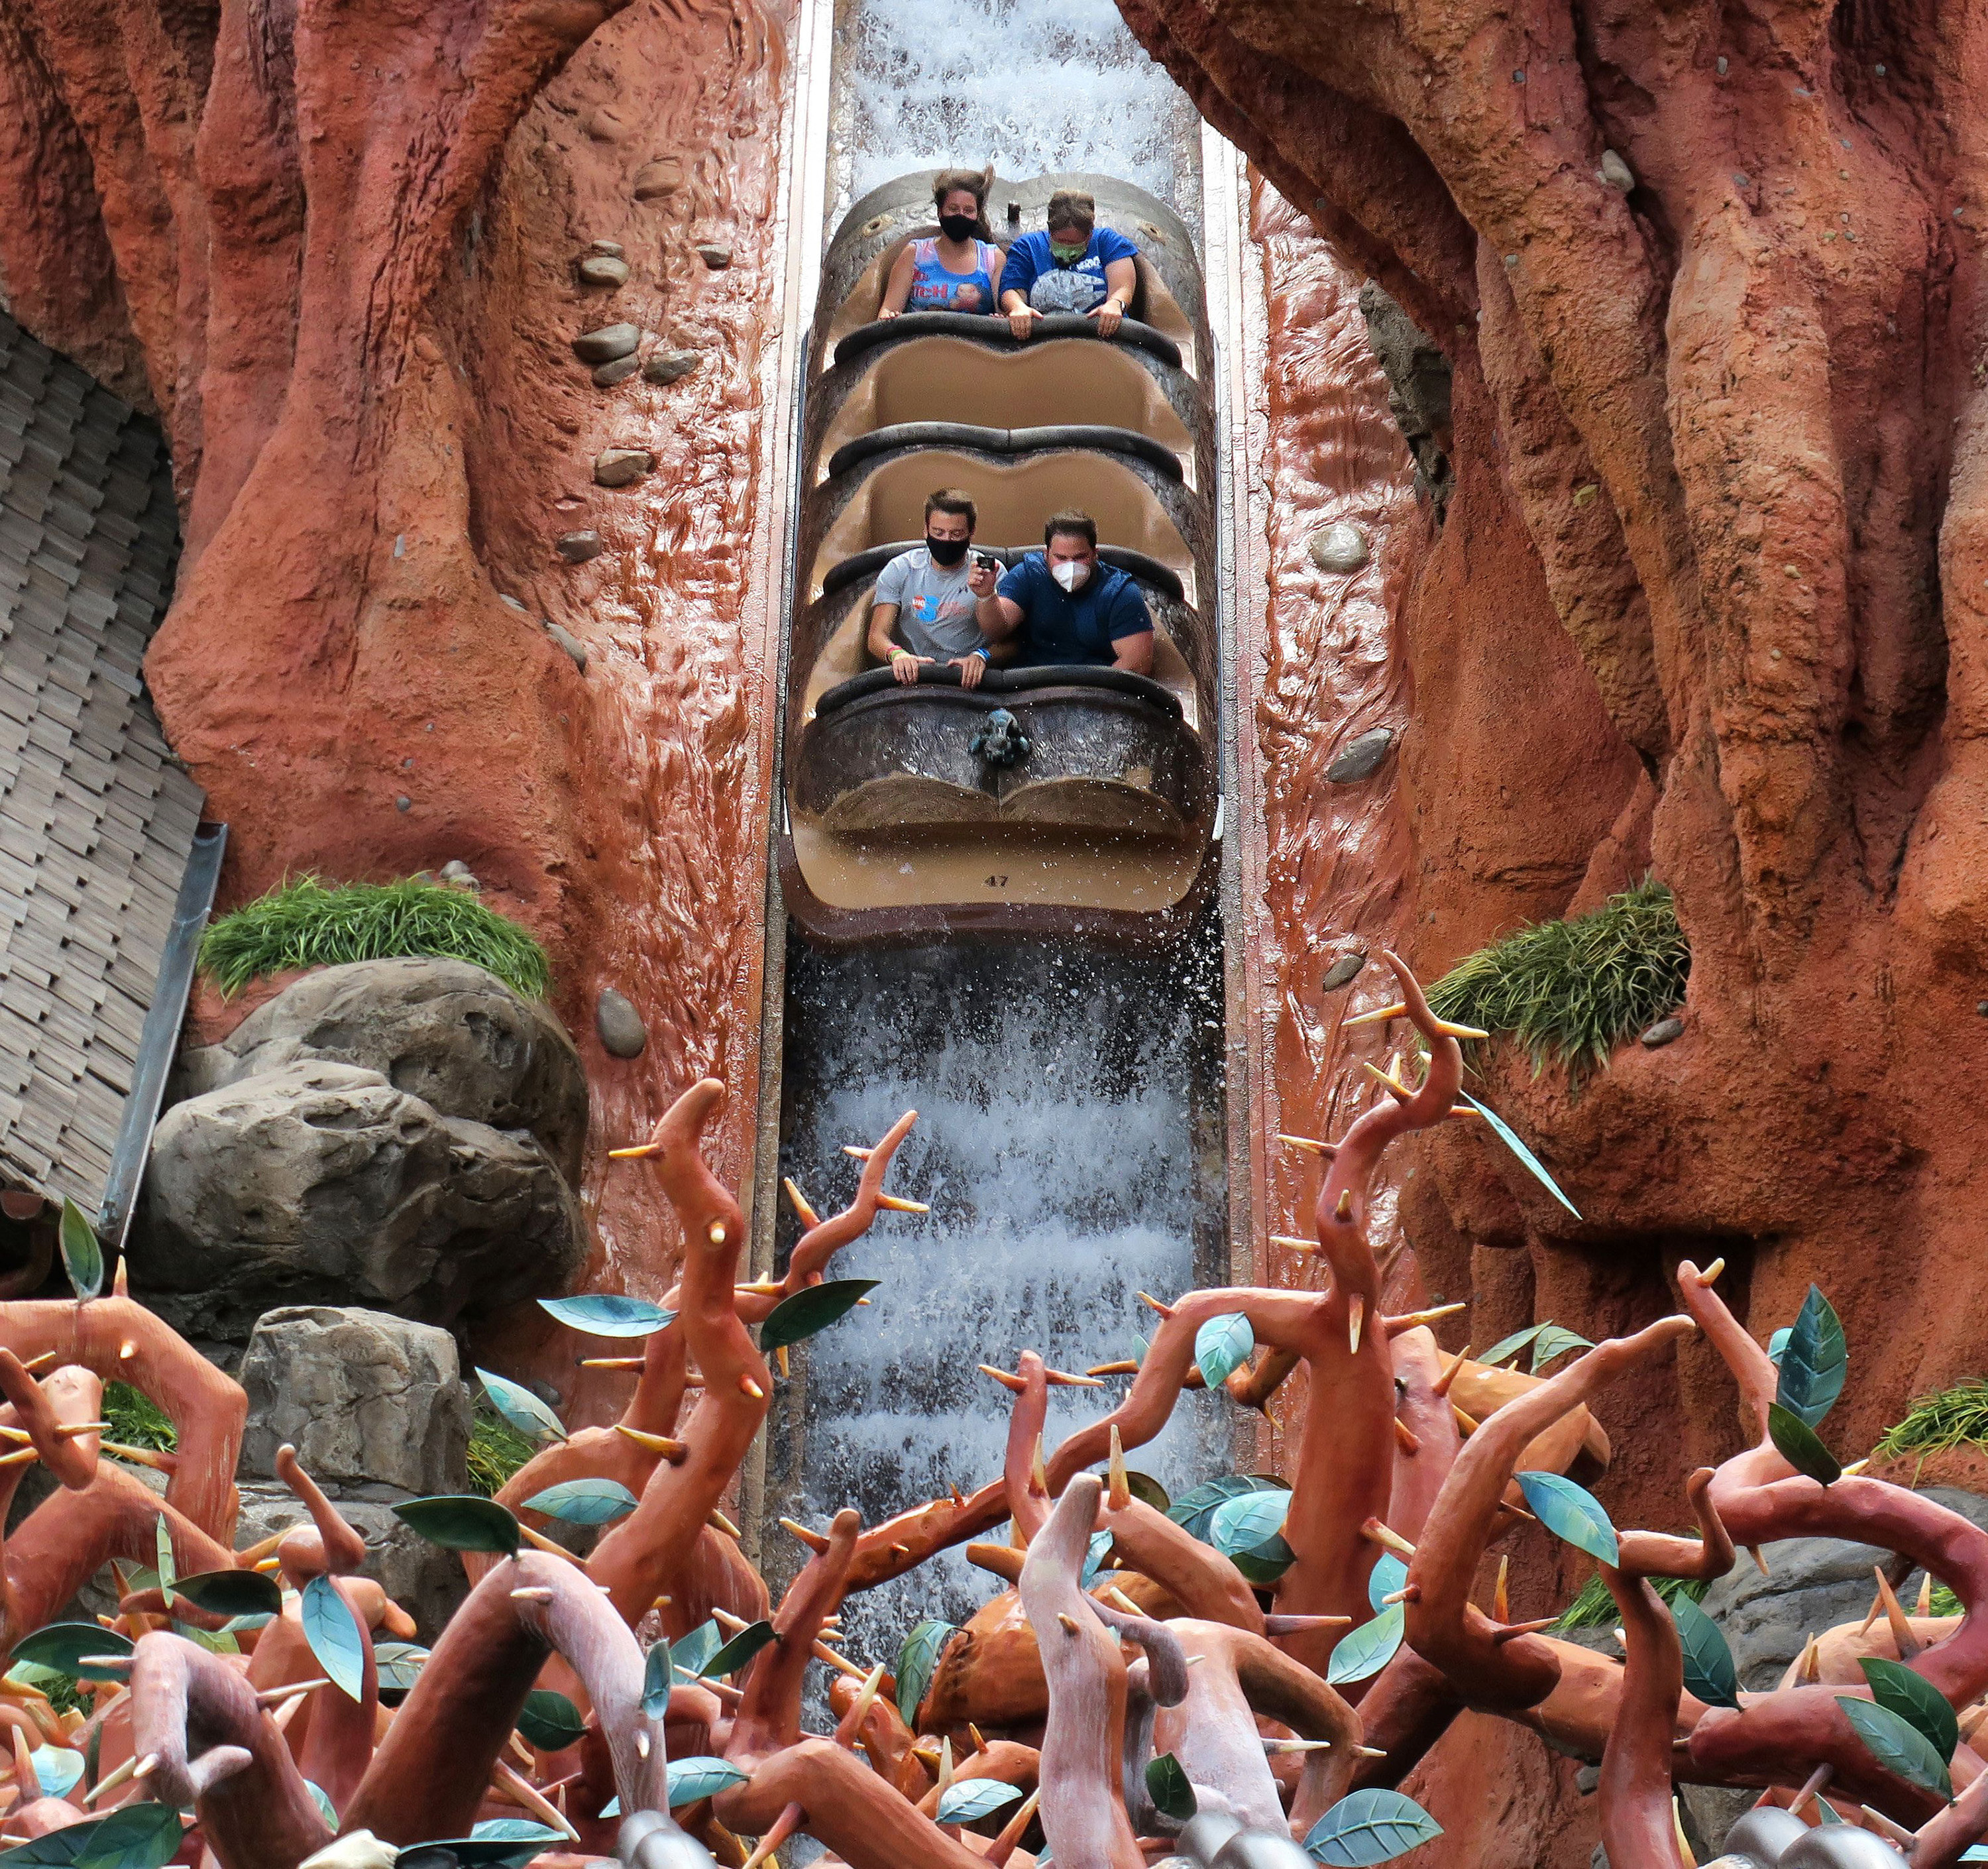 Four visitors ride Splash Mountain while separated by rows of seats